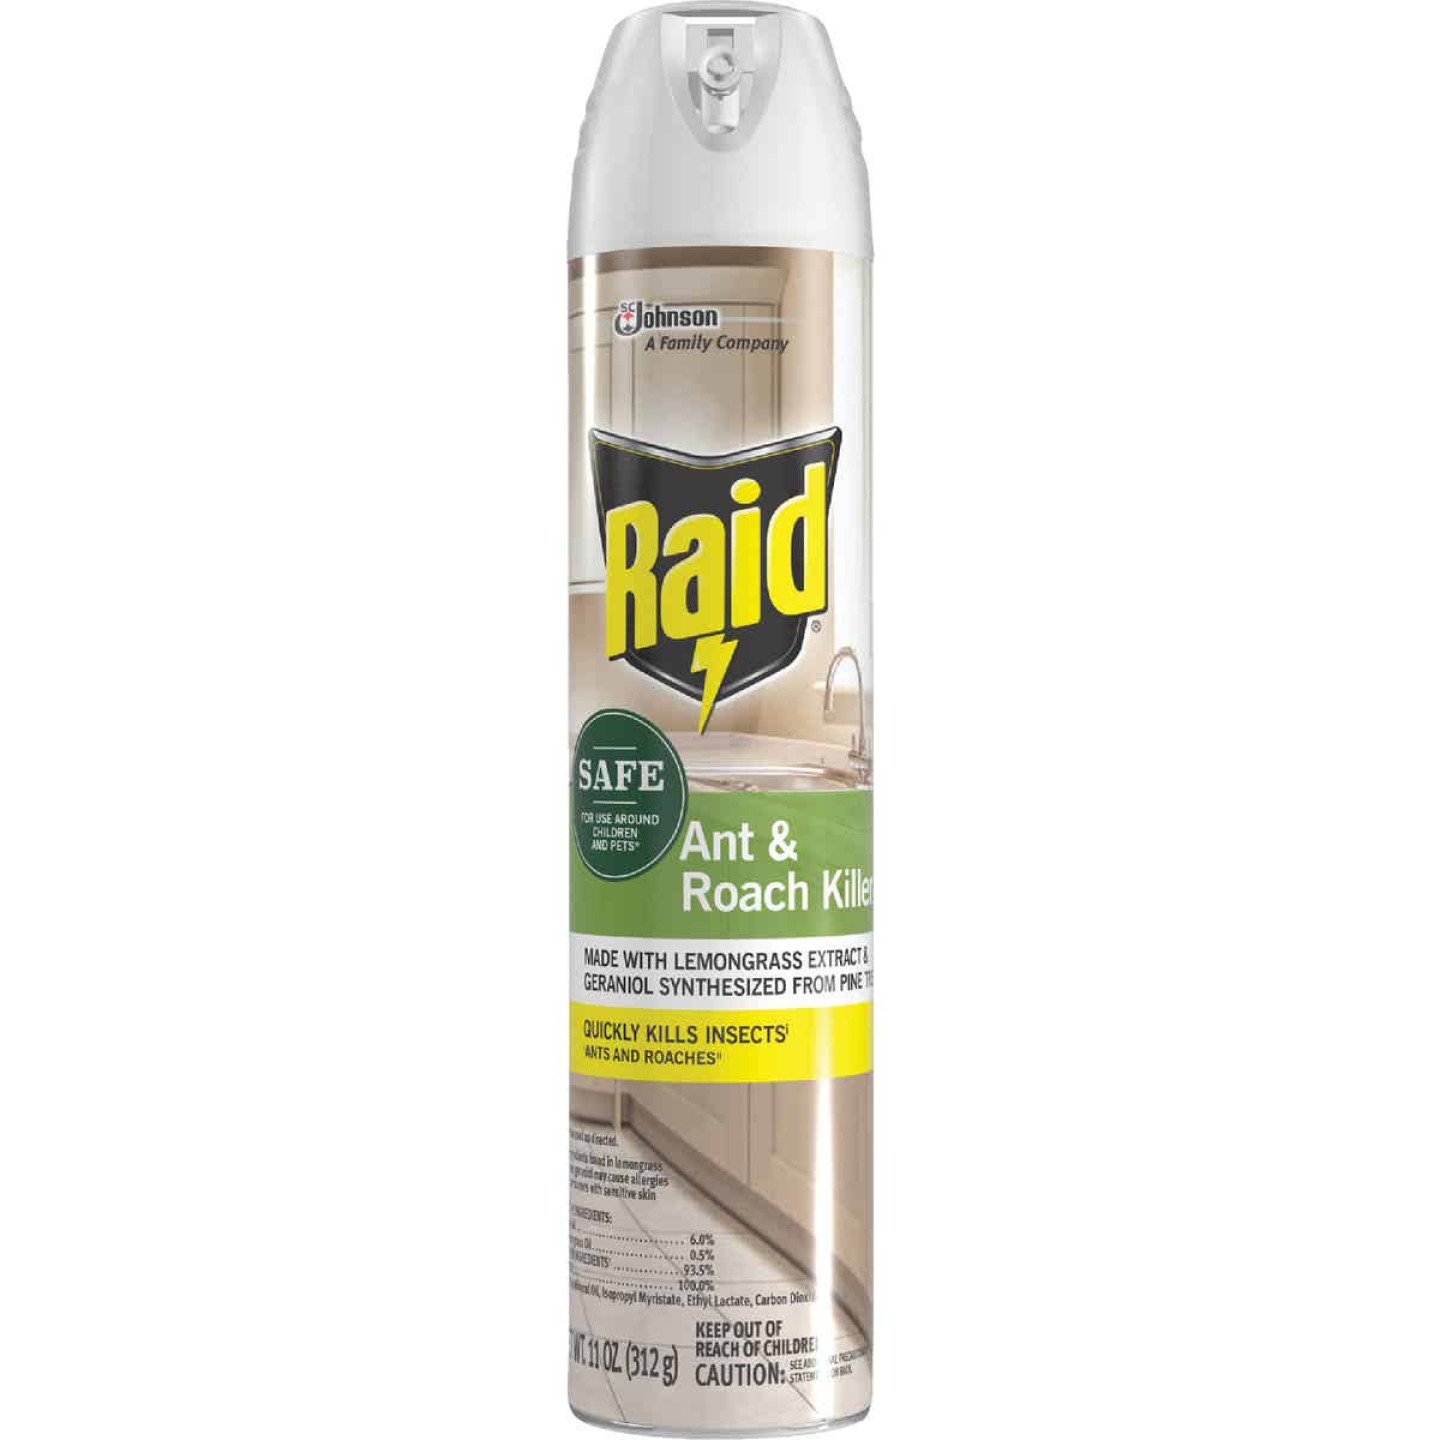 Raid 11 Oz. Aerosol Spray Ant & Roach Killer with Essential Oils Image 1